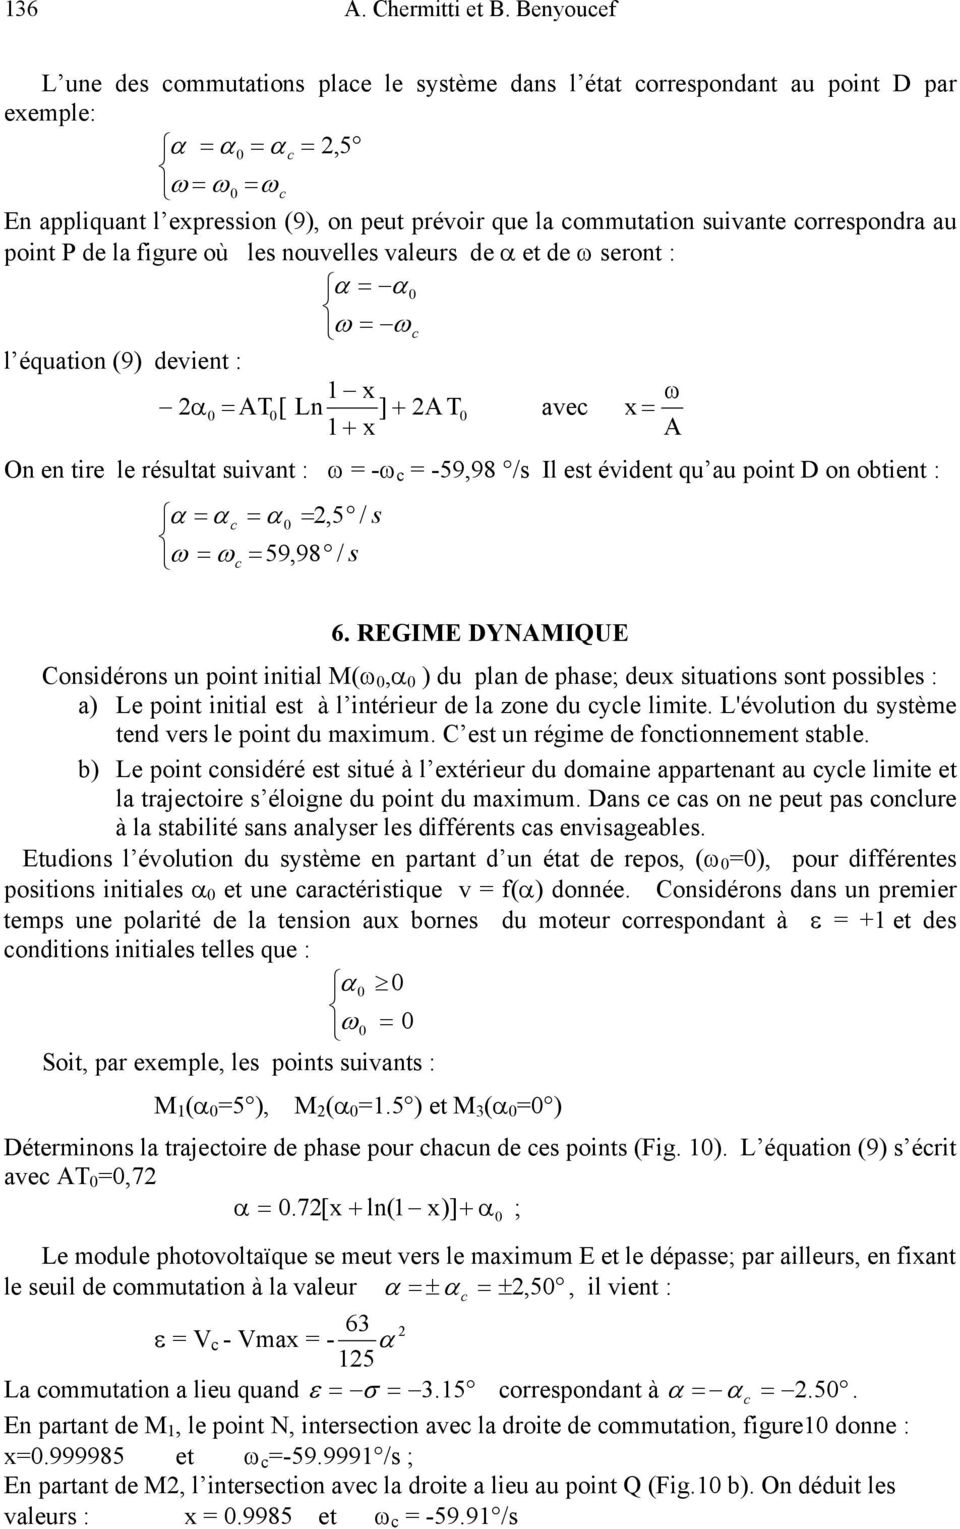 poin P de la figure où les nouvelles valeurs de α e de ω seron : α = α ω = ω l équaion (9) devien : 1 x ω α = AT [ Ln ] + A T ave x = 1 + x A On en ire le résula suivan : ω = -ω = -59,98 /s Il es